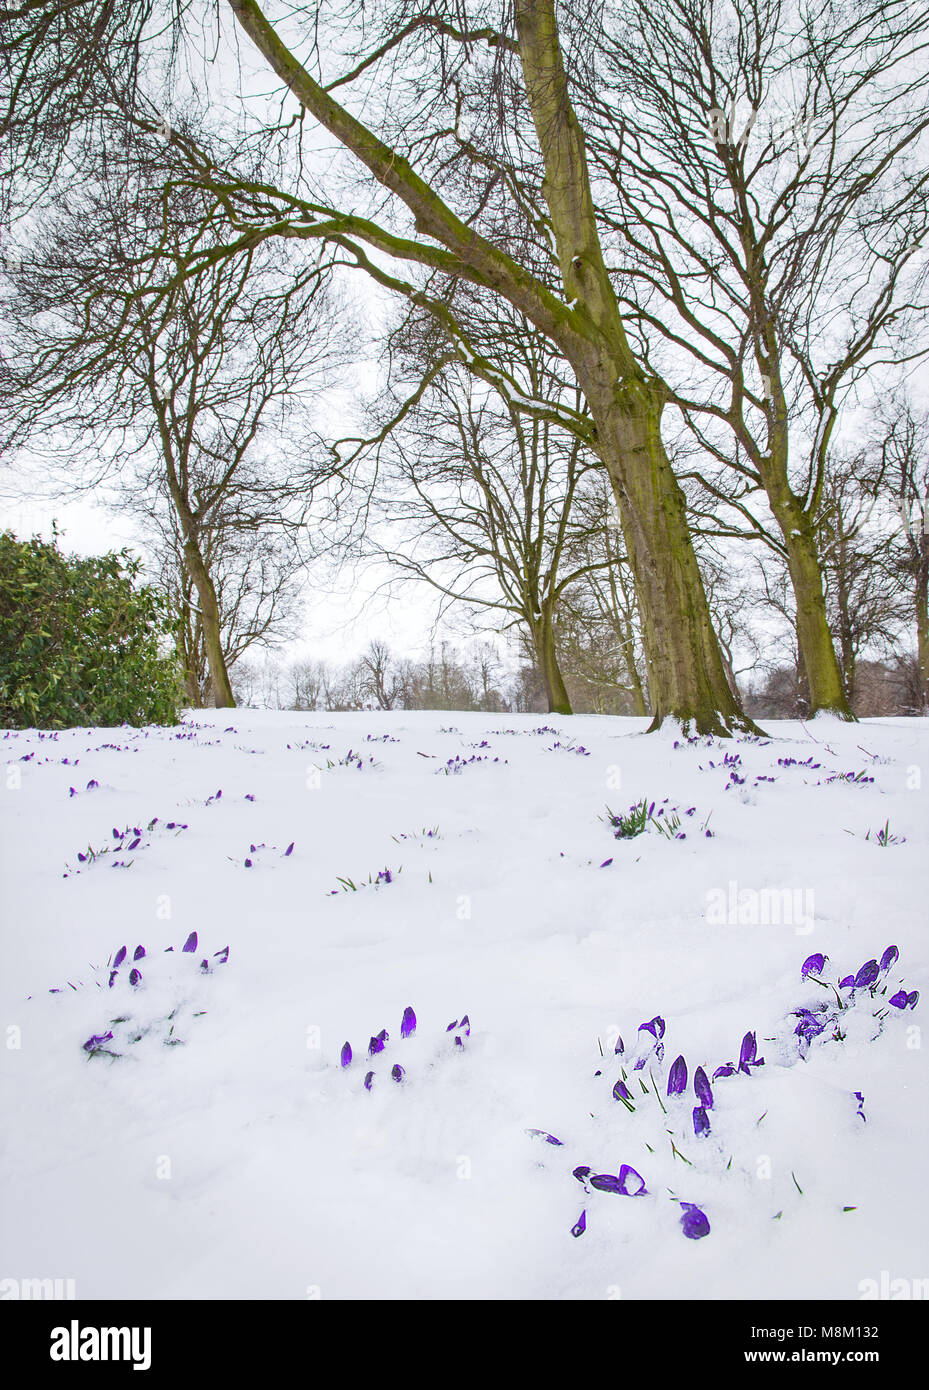 Lichfield, Staffordshire, England.  18th March 2018.  Crocuses show their heads amongst beech trees in fresh snow - Stock Image